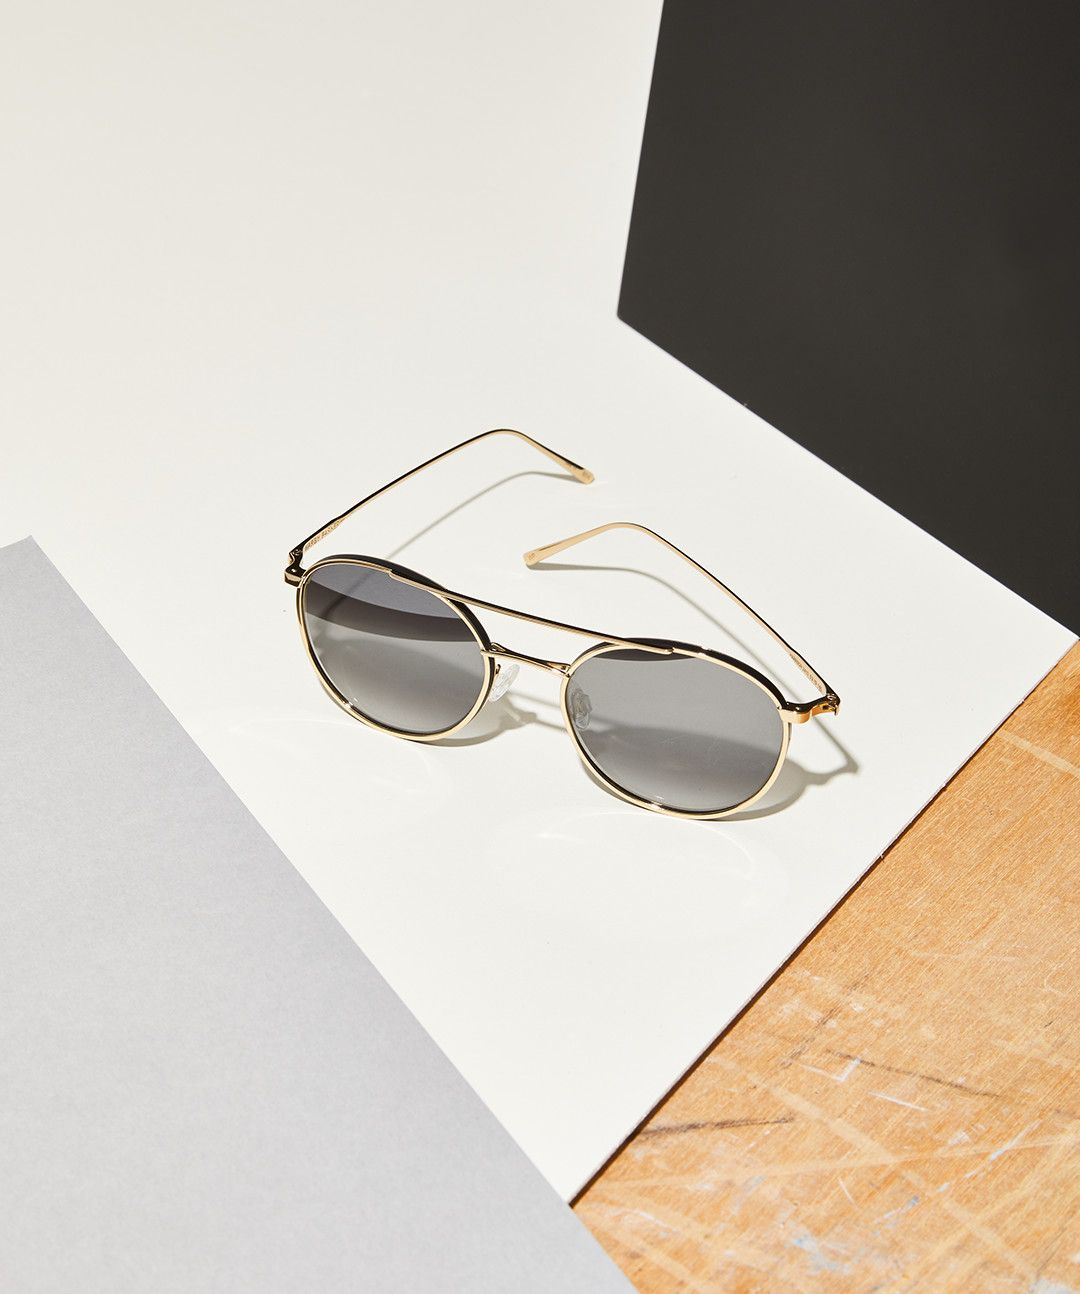 The Versatile, Just-Different-Enough Sunglasses You Can Wear All Year Long